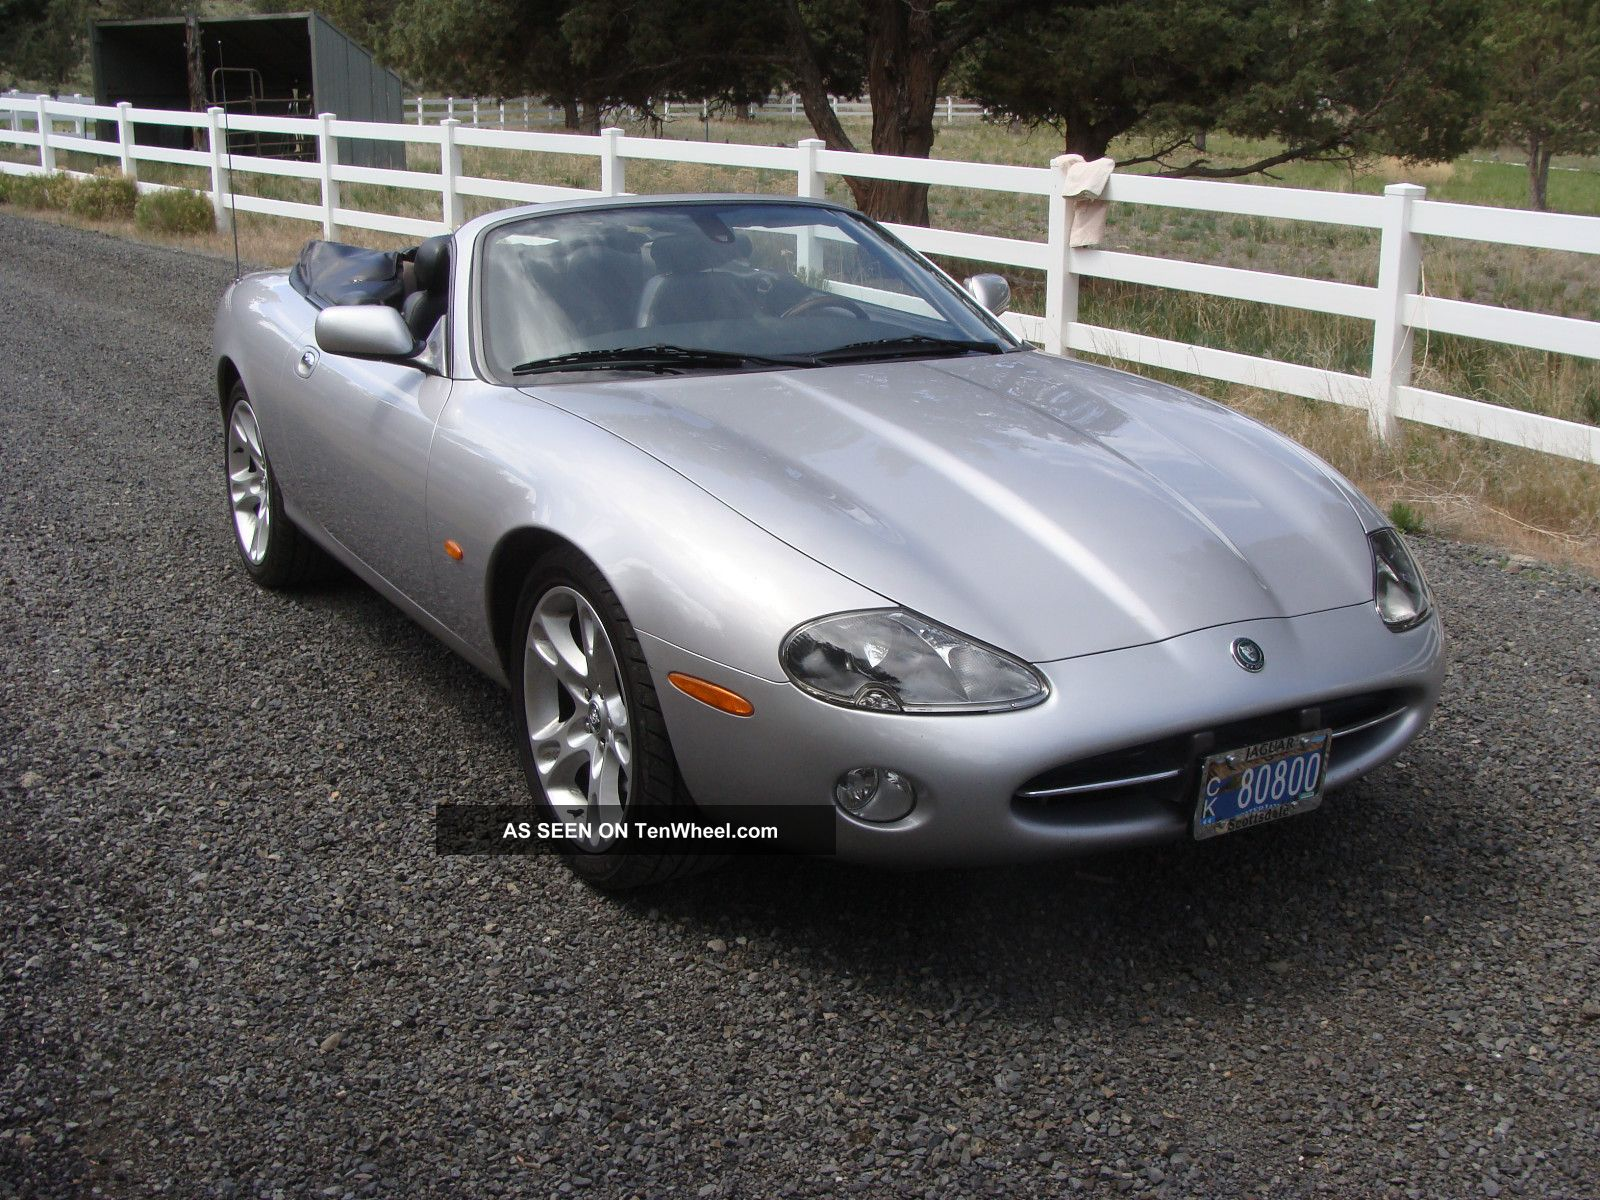 2004 Jaguar Xk8 Convertible In Condition XK photo